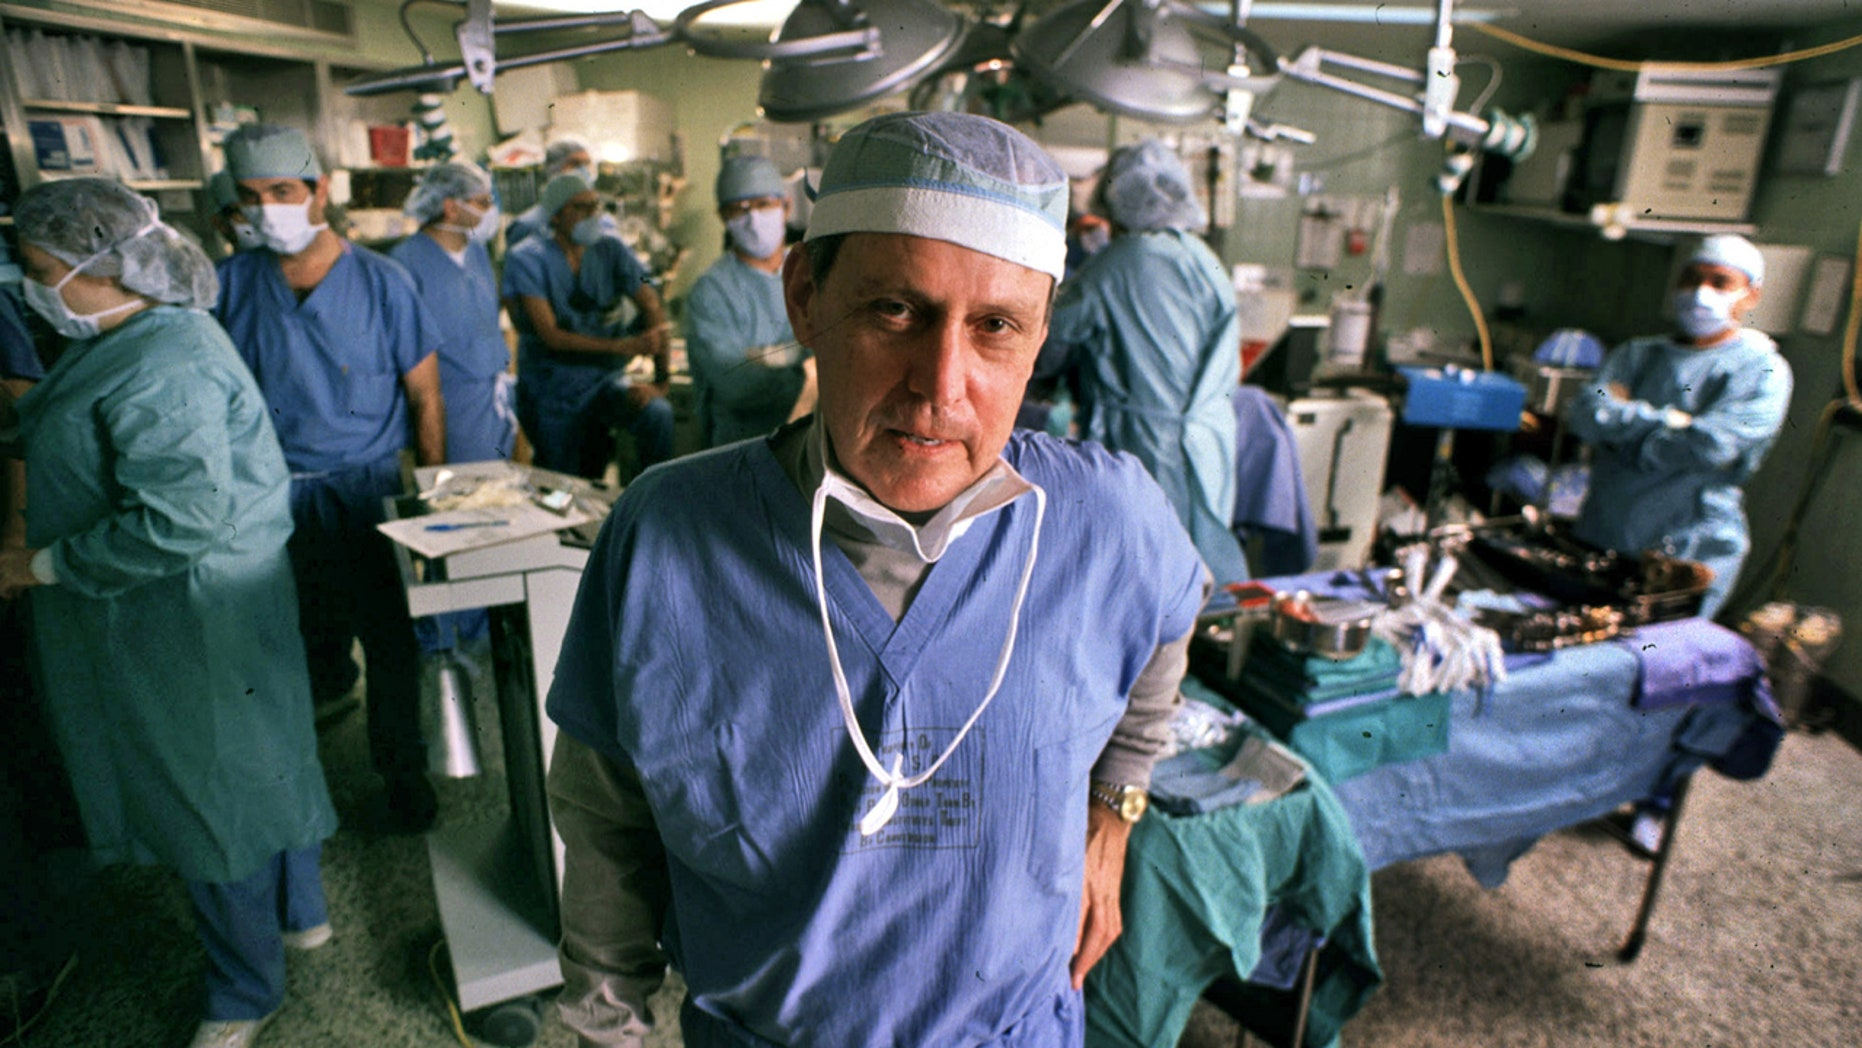 This Nov. 10, 1989 file photo shows transplant pioneer Dr. Thomas E. Starzl as he oversees a liver transplant operation at the University of Pittsburgh Medical Center in Pittsburgh.